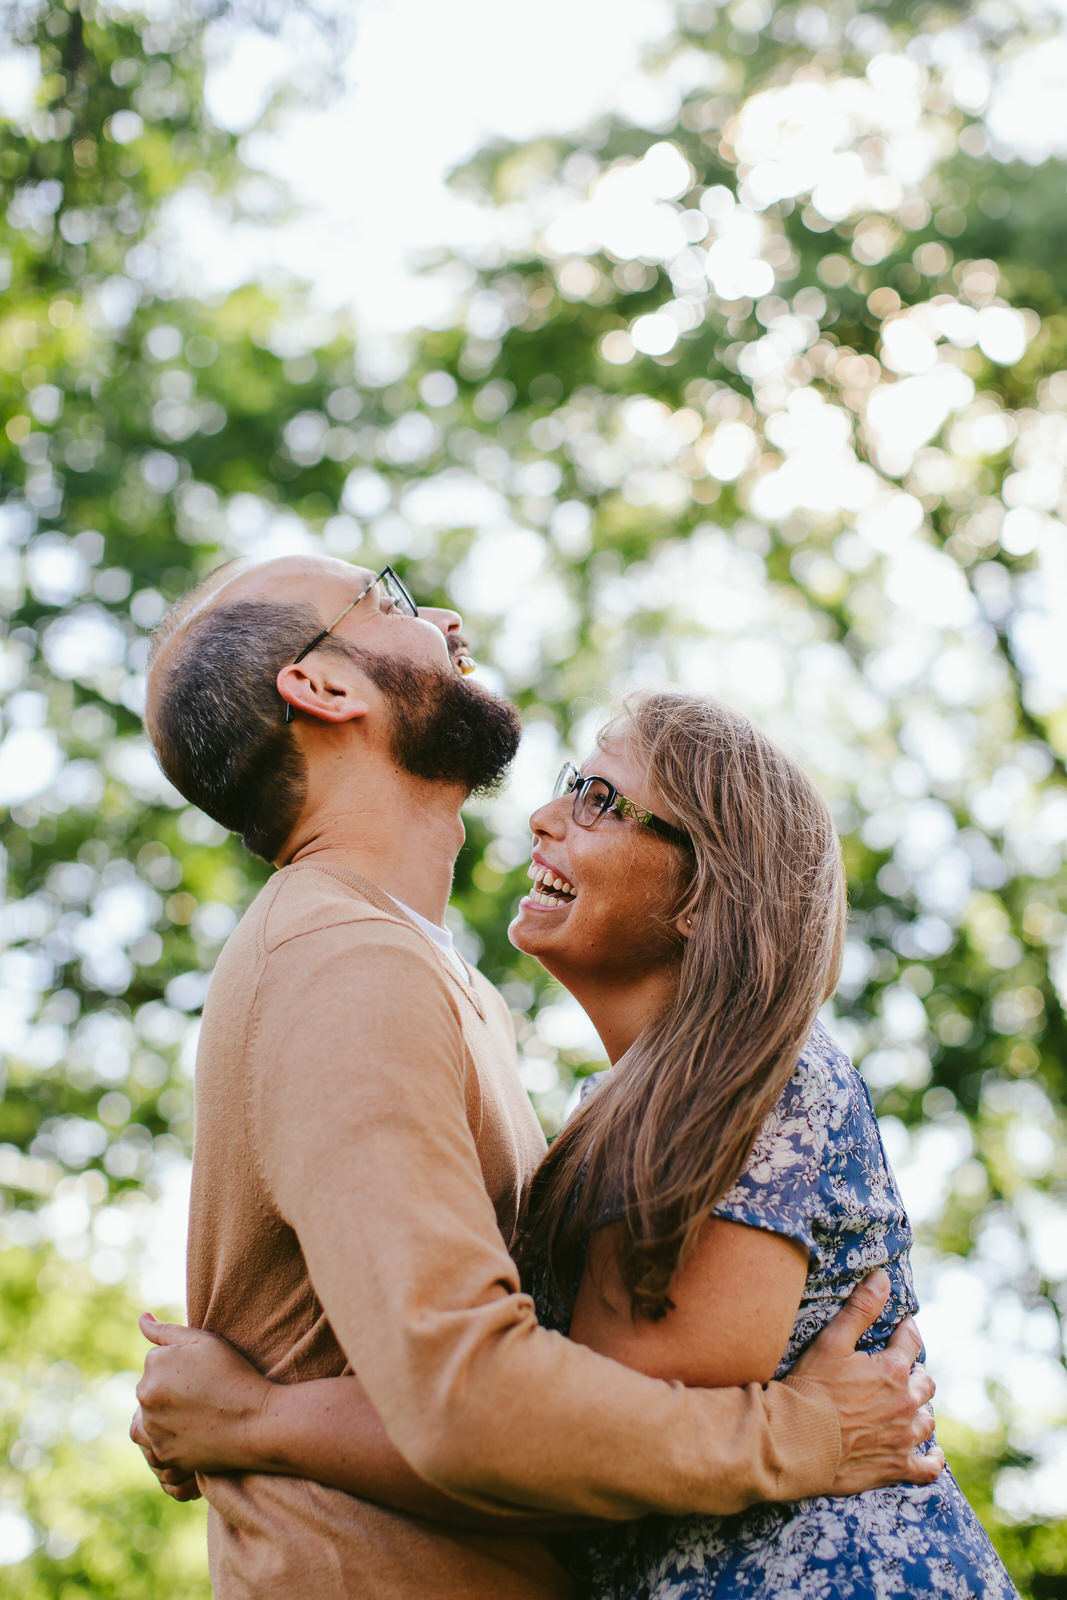 Proposal_Feeling_Laughter_Emotions_Happiness_Tiny_House_Photo_Proposal_Photographer_Nashville.jpg